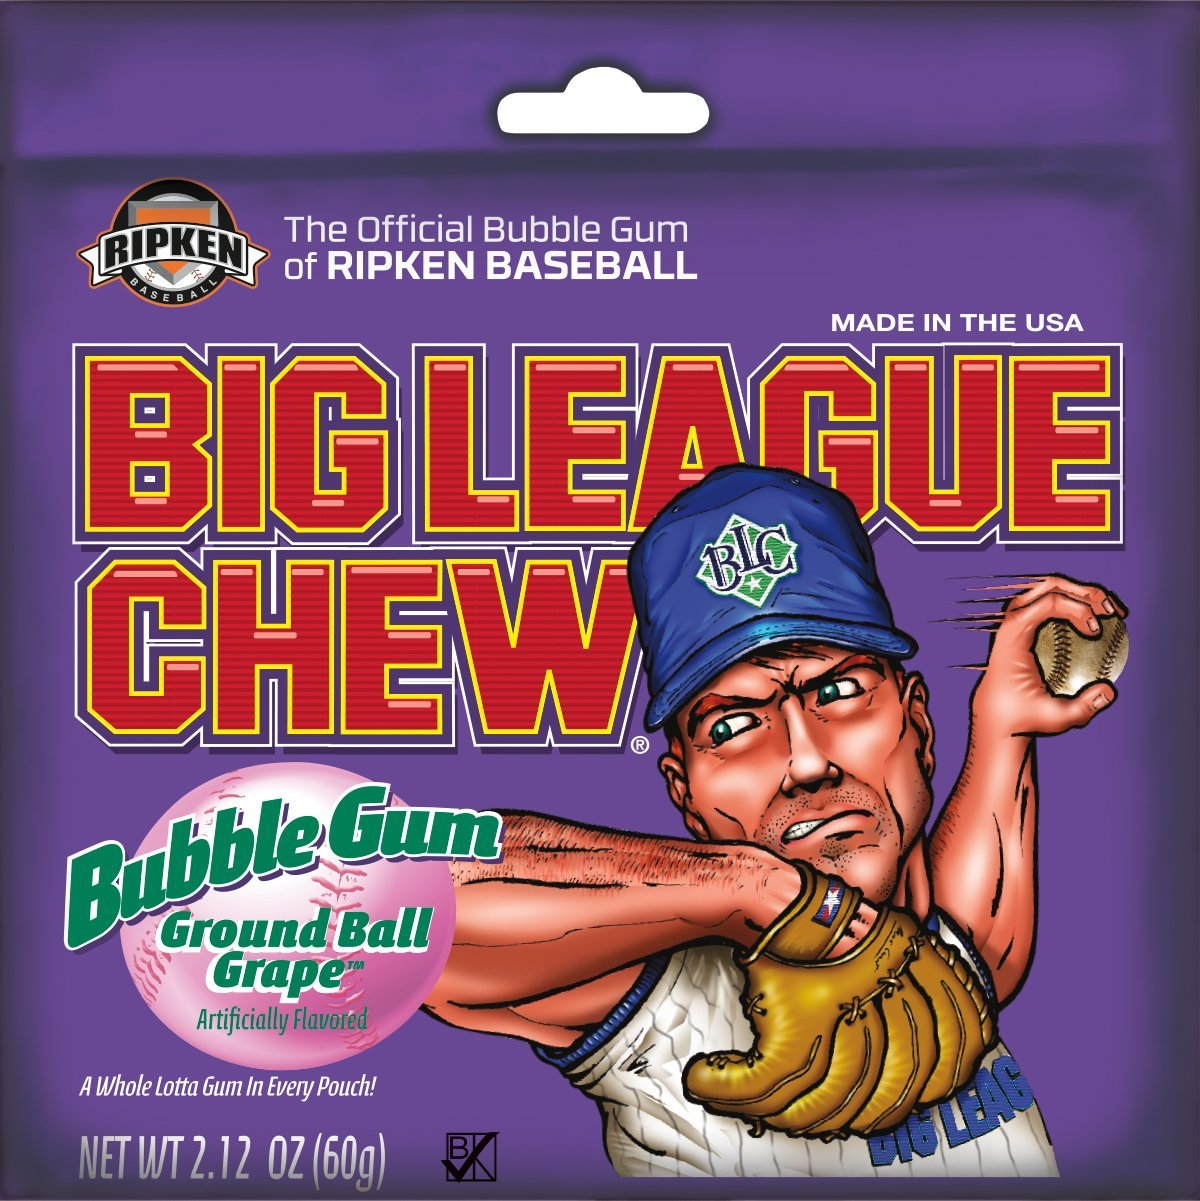 baseball players and coaches chewing gum